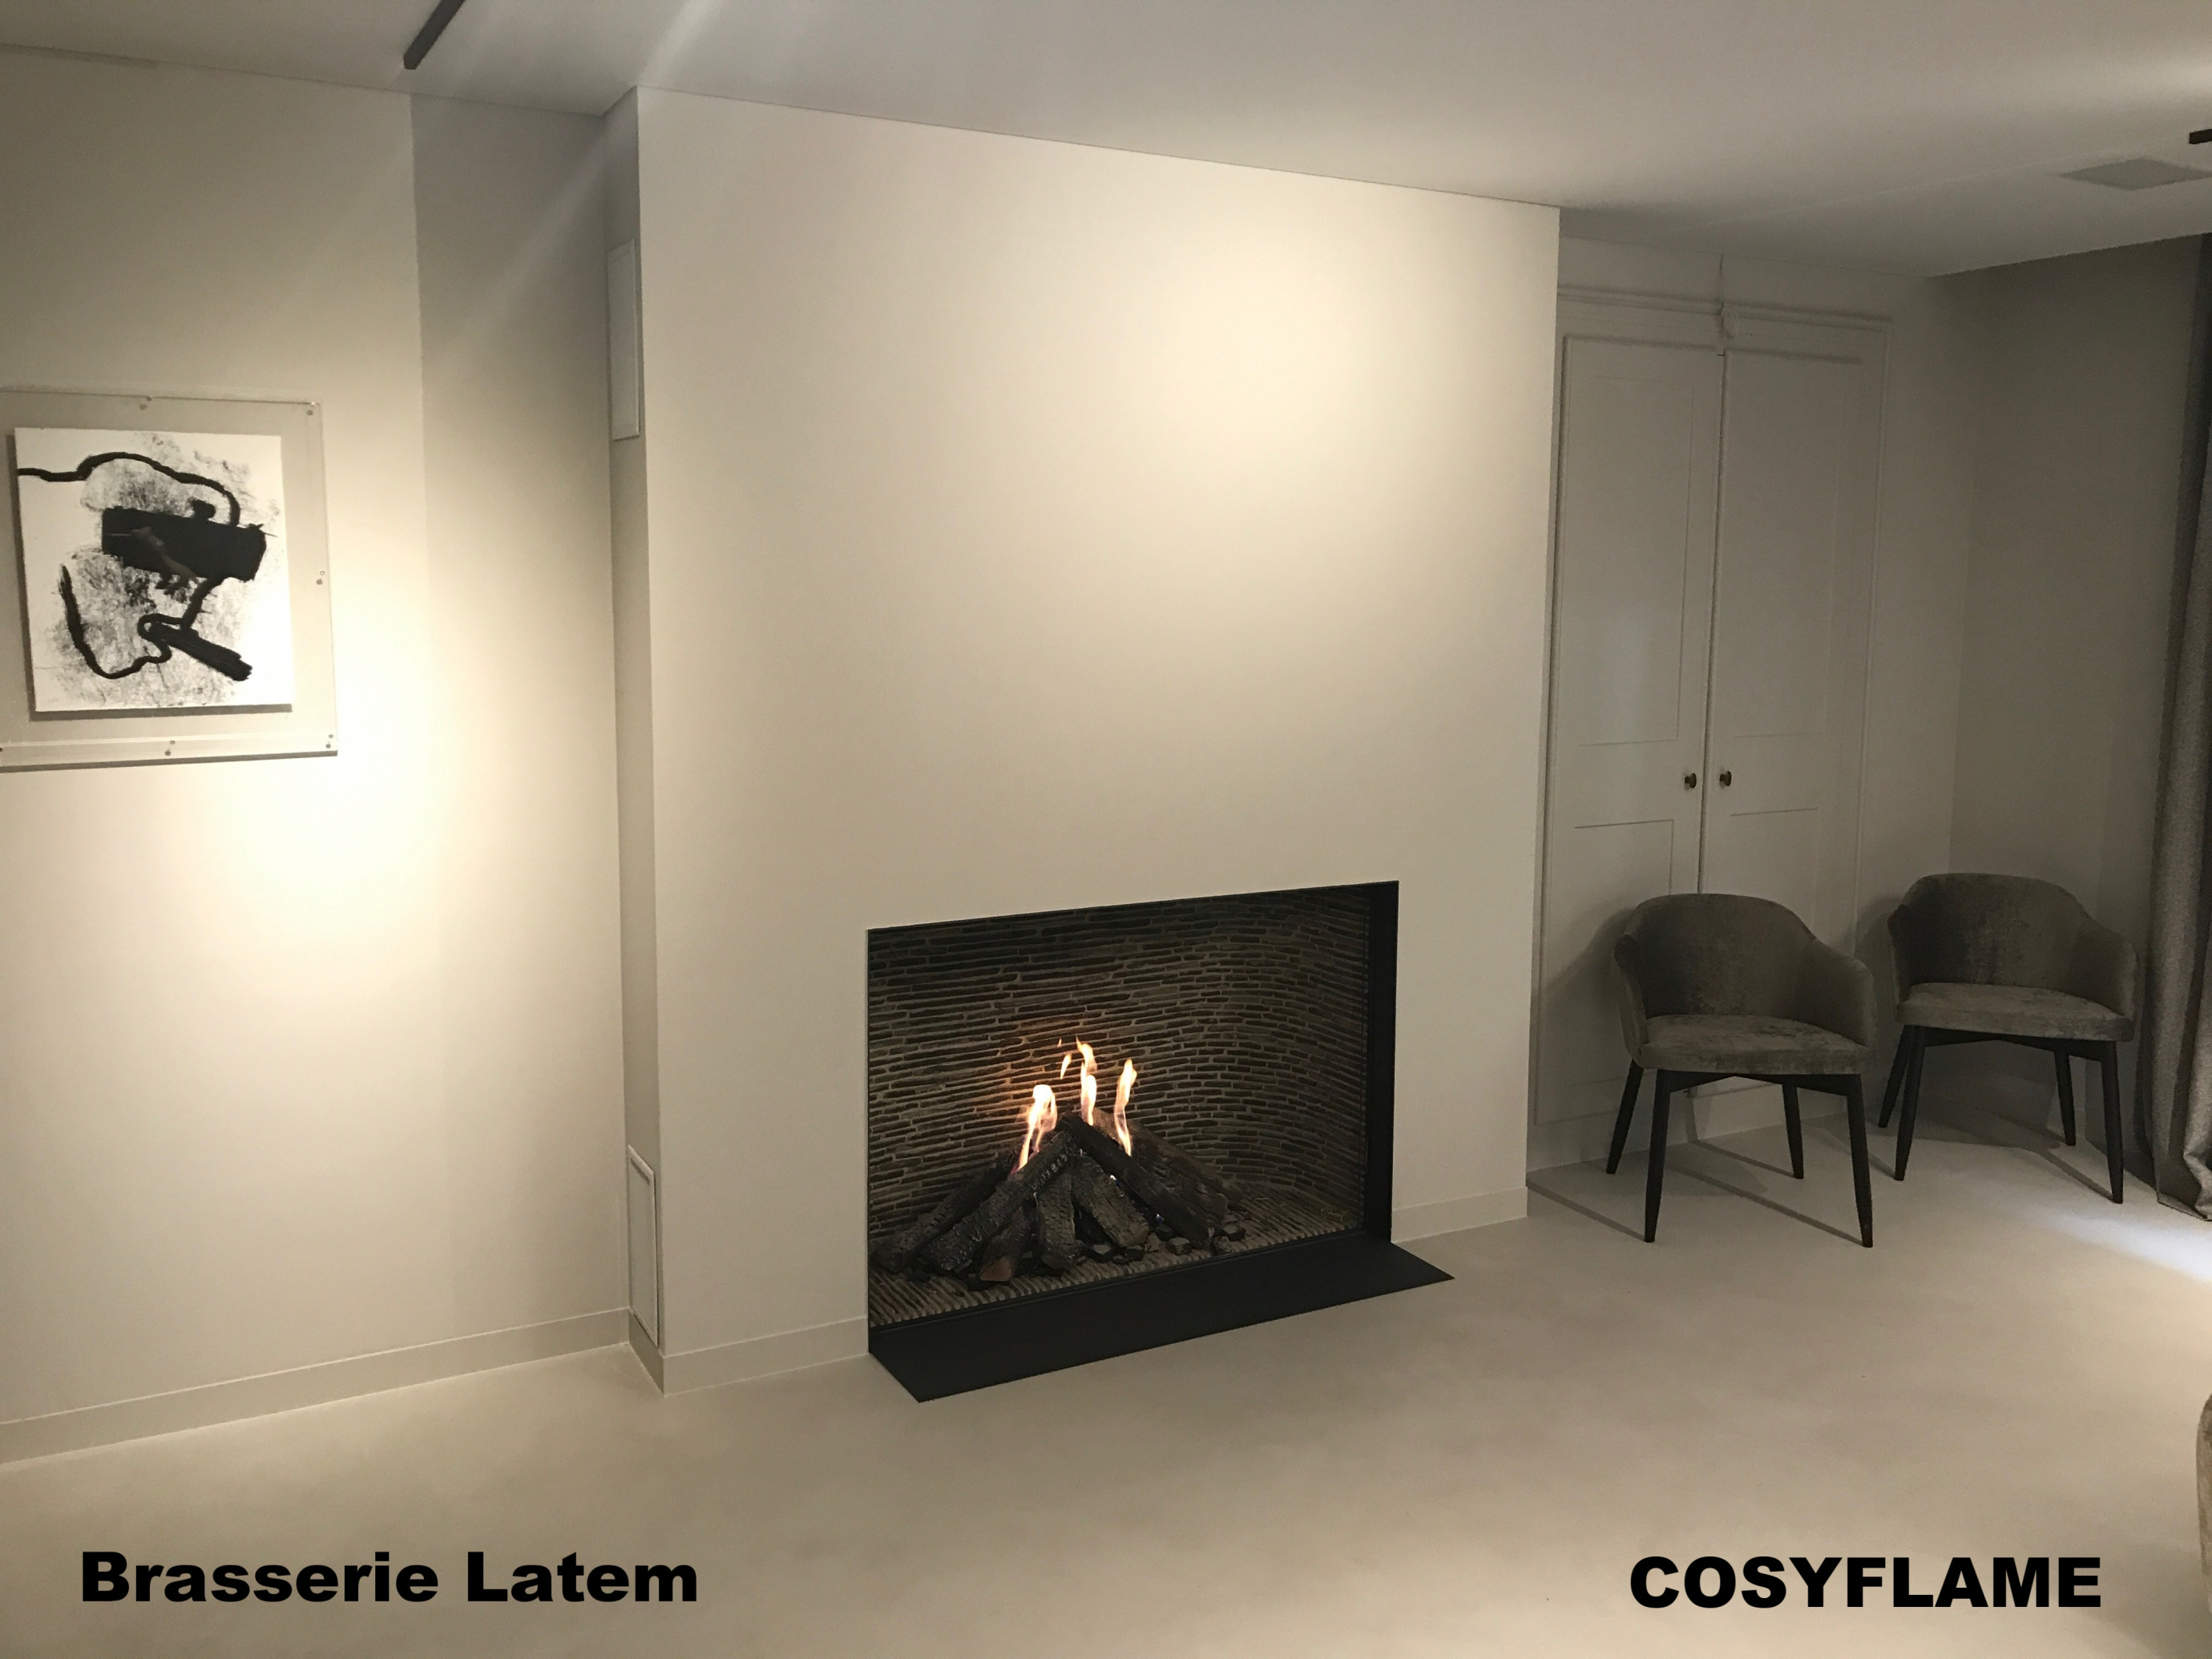 Cosyflame-Restaurants-Brasserie Latem-42.jpeg